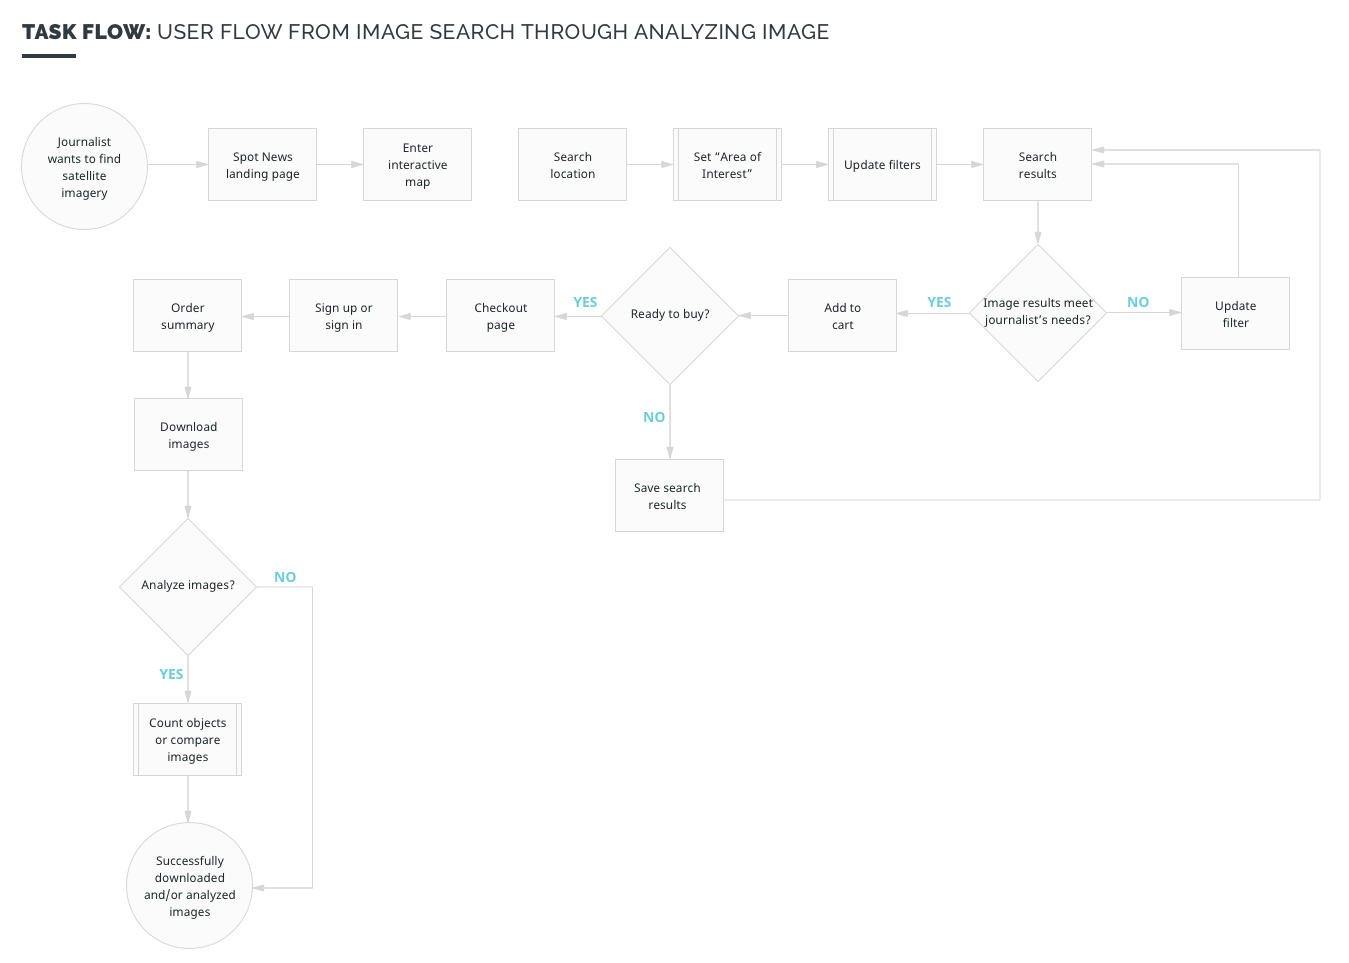 Task flow for a core use case